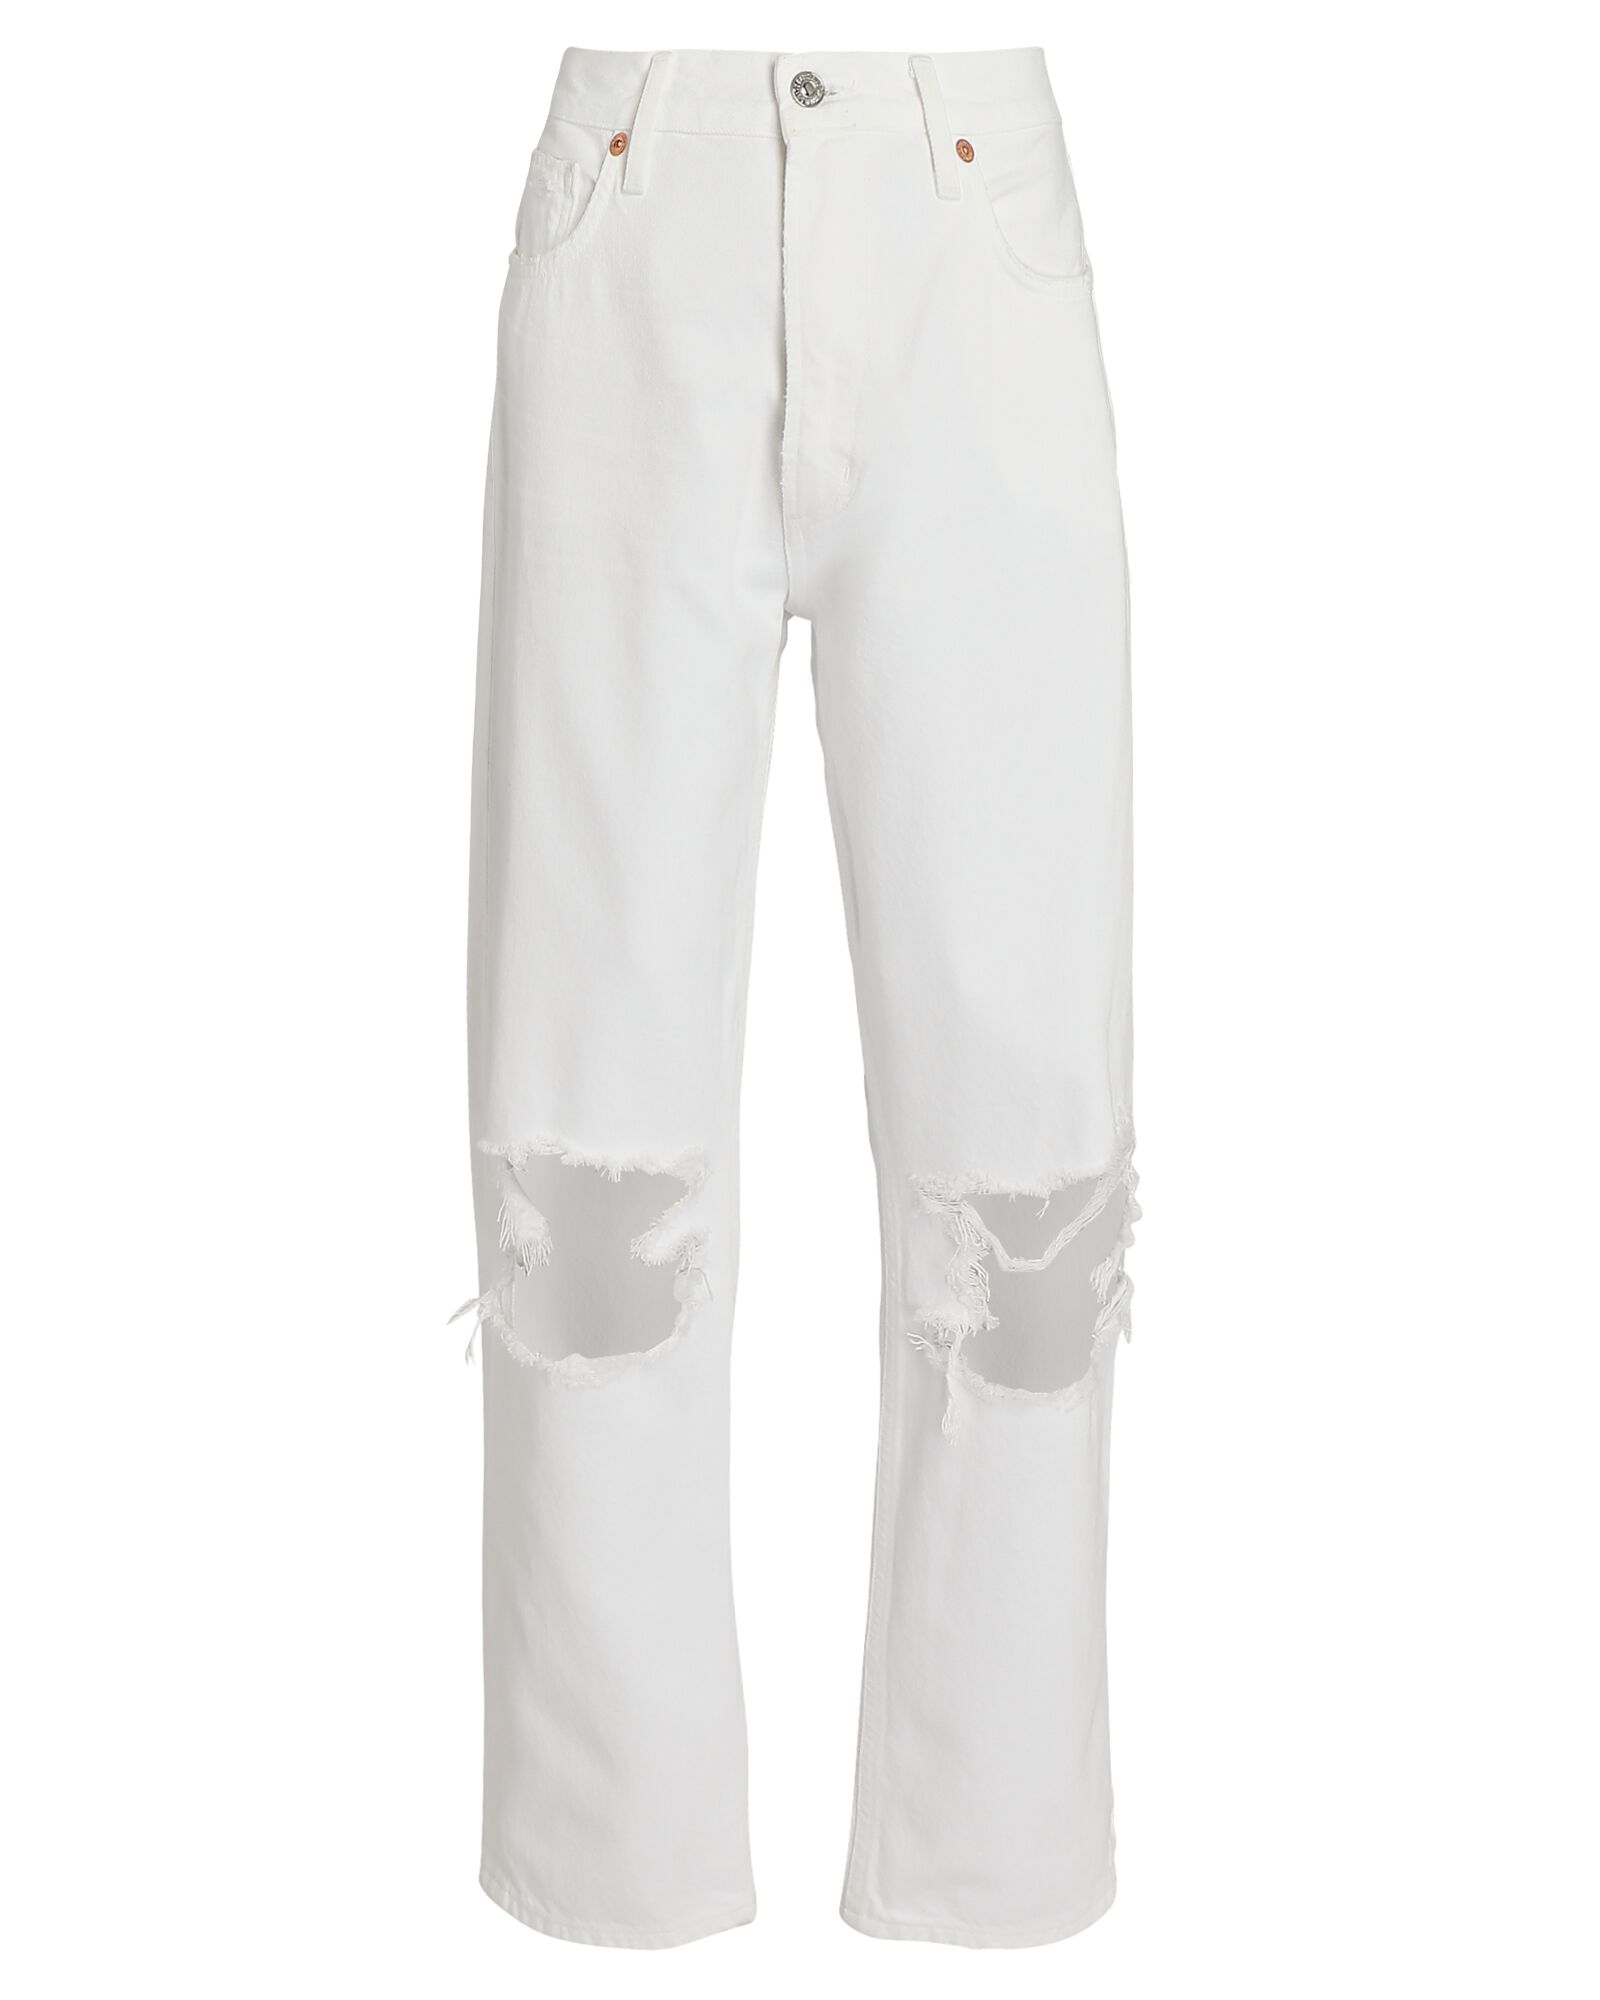 Marlee Relaxed Straight-Leg Jeans, BREEZEWAY, hi-res